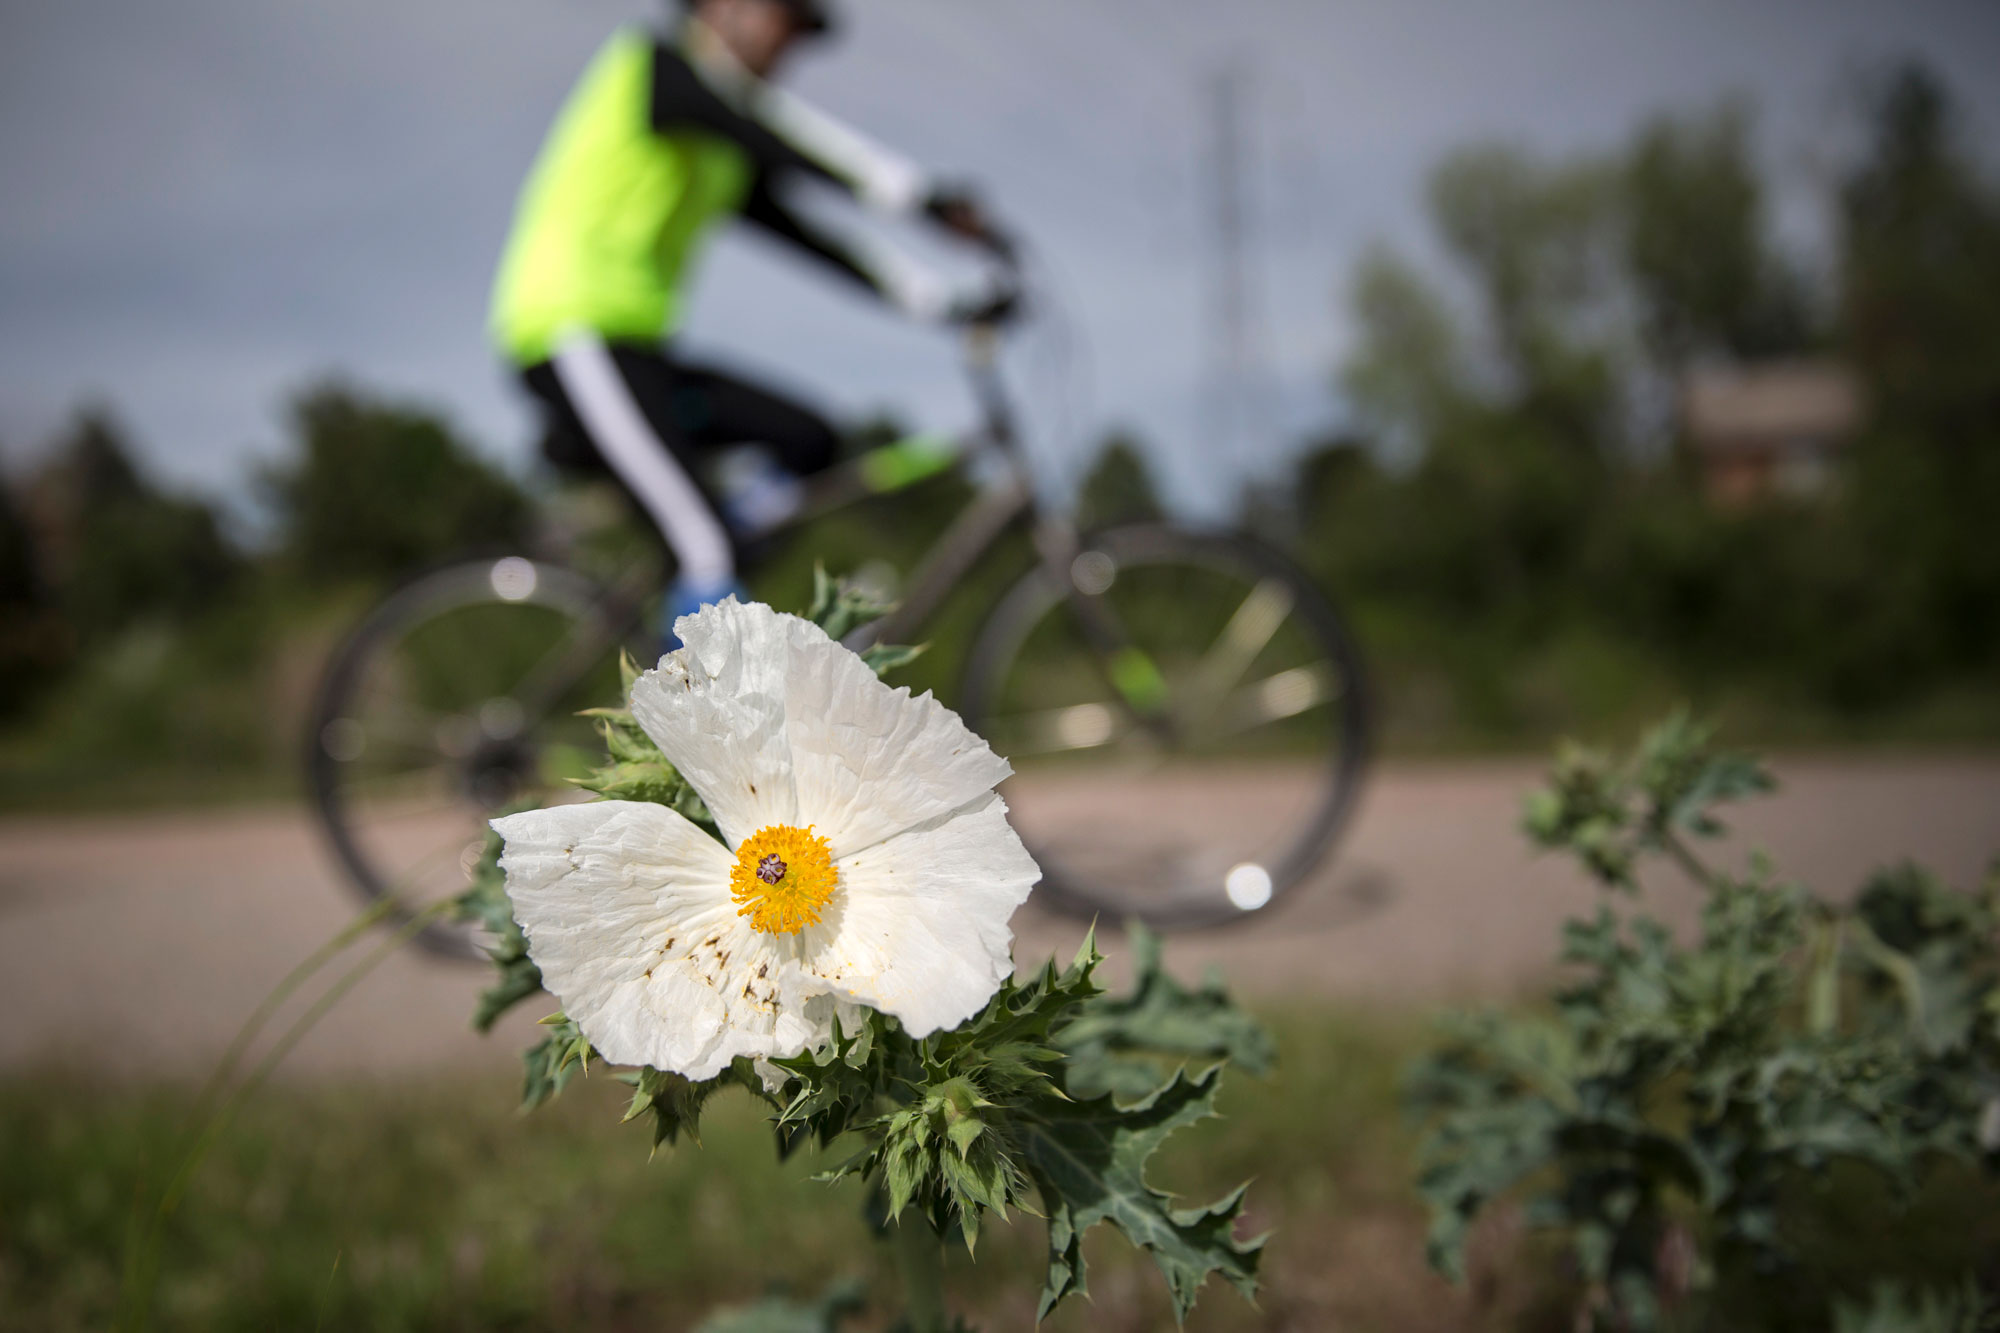 The High Line Canal, once an important irrigation system for Colorado's Front Range, is better known now as a recreation trail. A bicyclist rides the Highline Canal Trail near South Quebec Way on June 12, 2019.